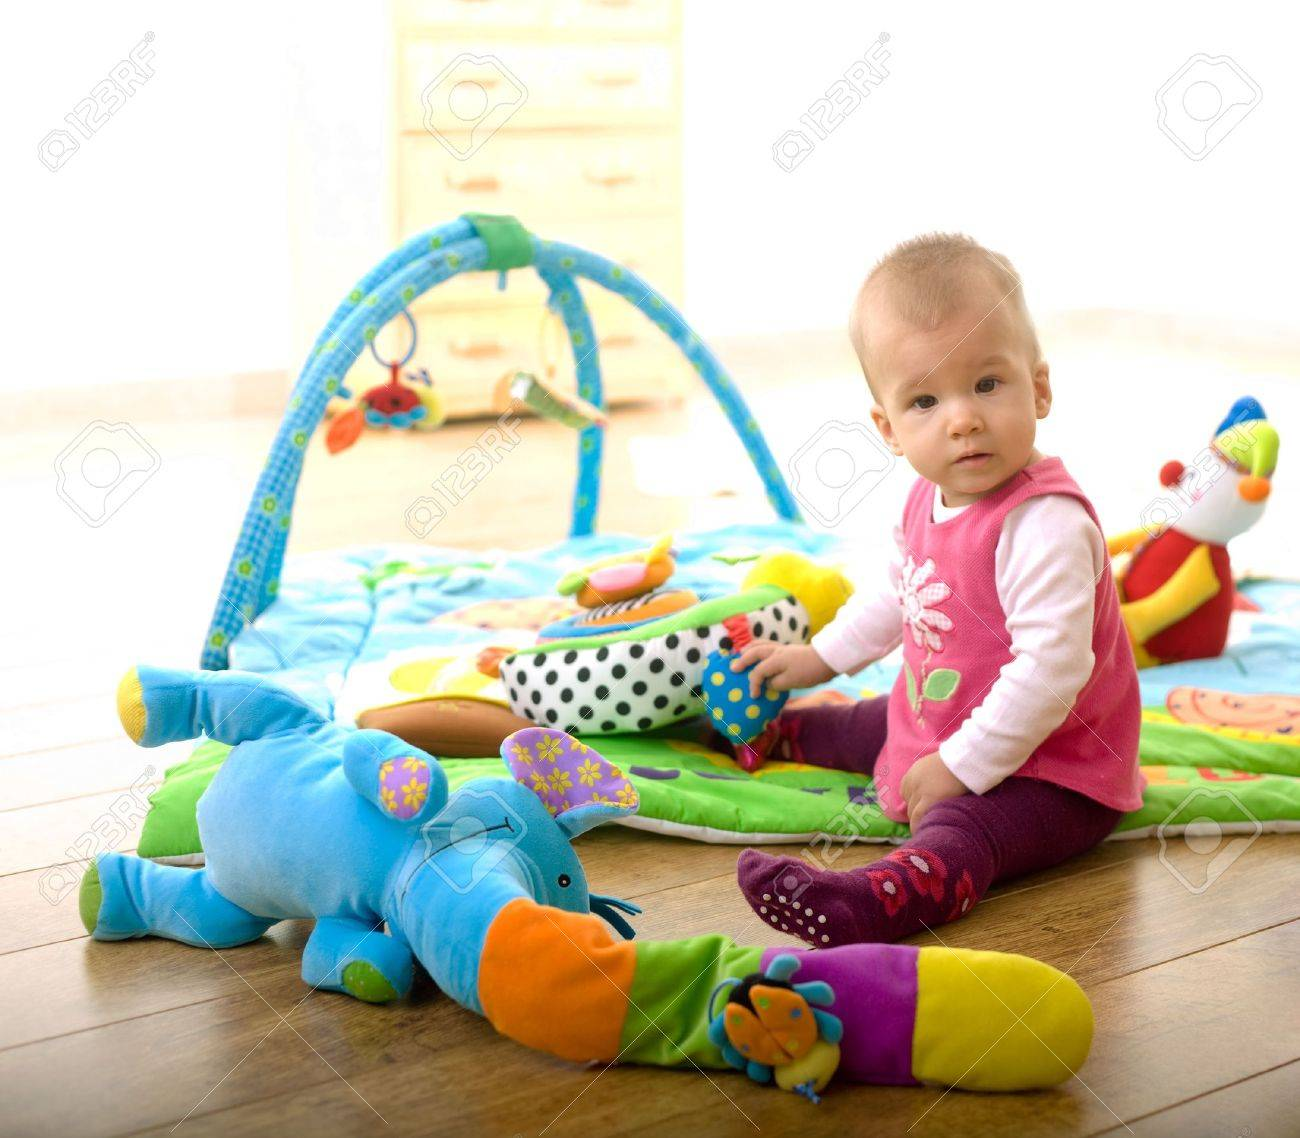 Baby Girl 9 Months Old Sitting On Floor And Playing With Toys - 9-month-old-baby-toys